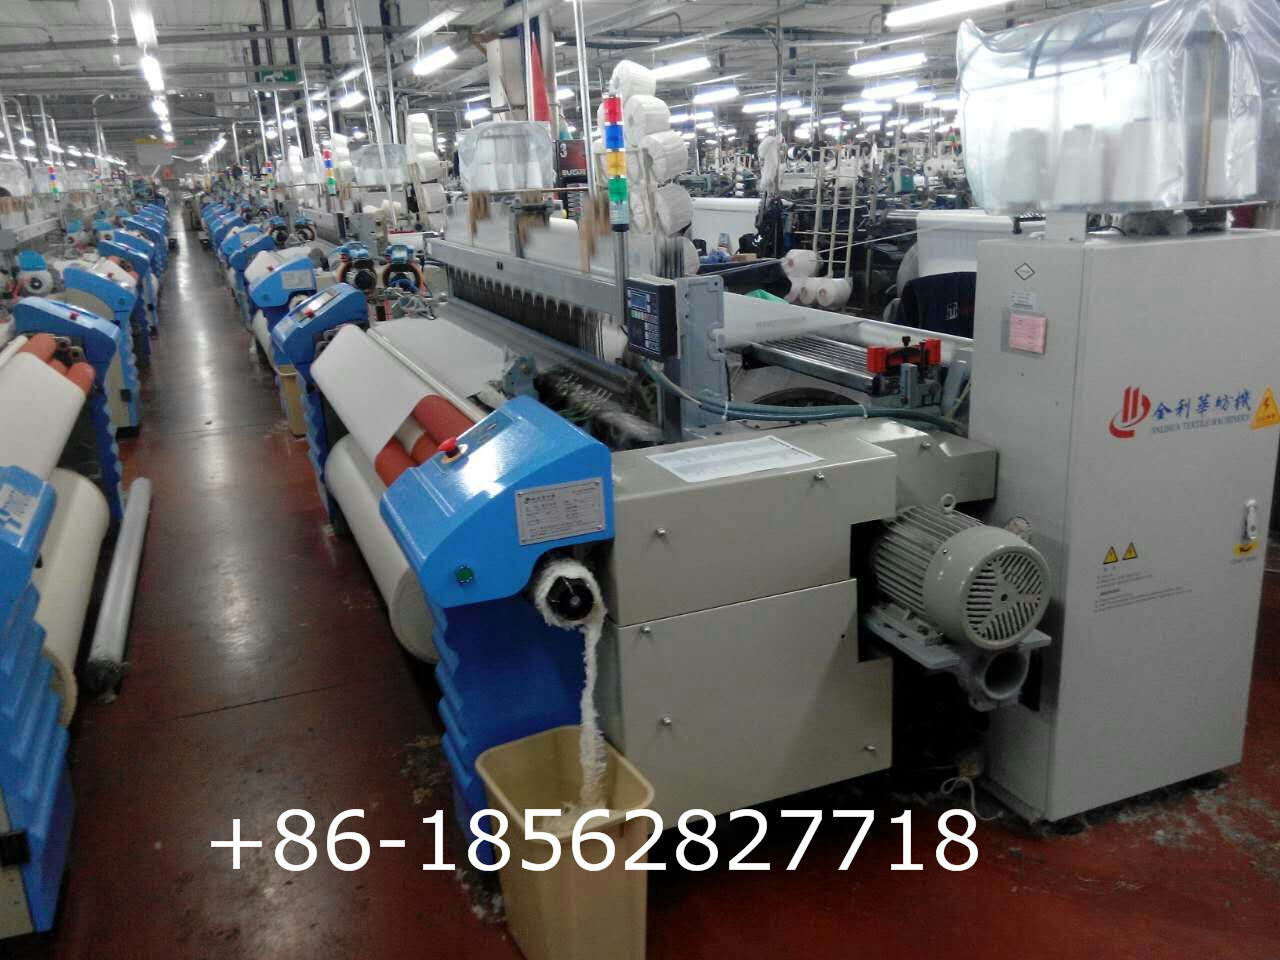 china tsudakoma textile machinery zax9100 air jet loom with low rh jinlihuacn en made in china com Textile Machine Parts of a Loom